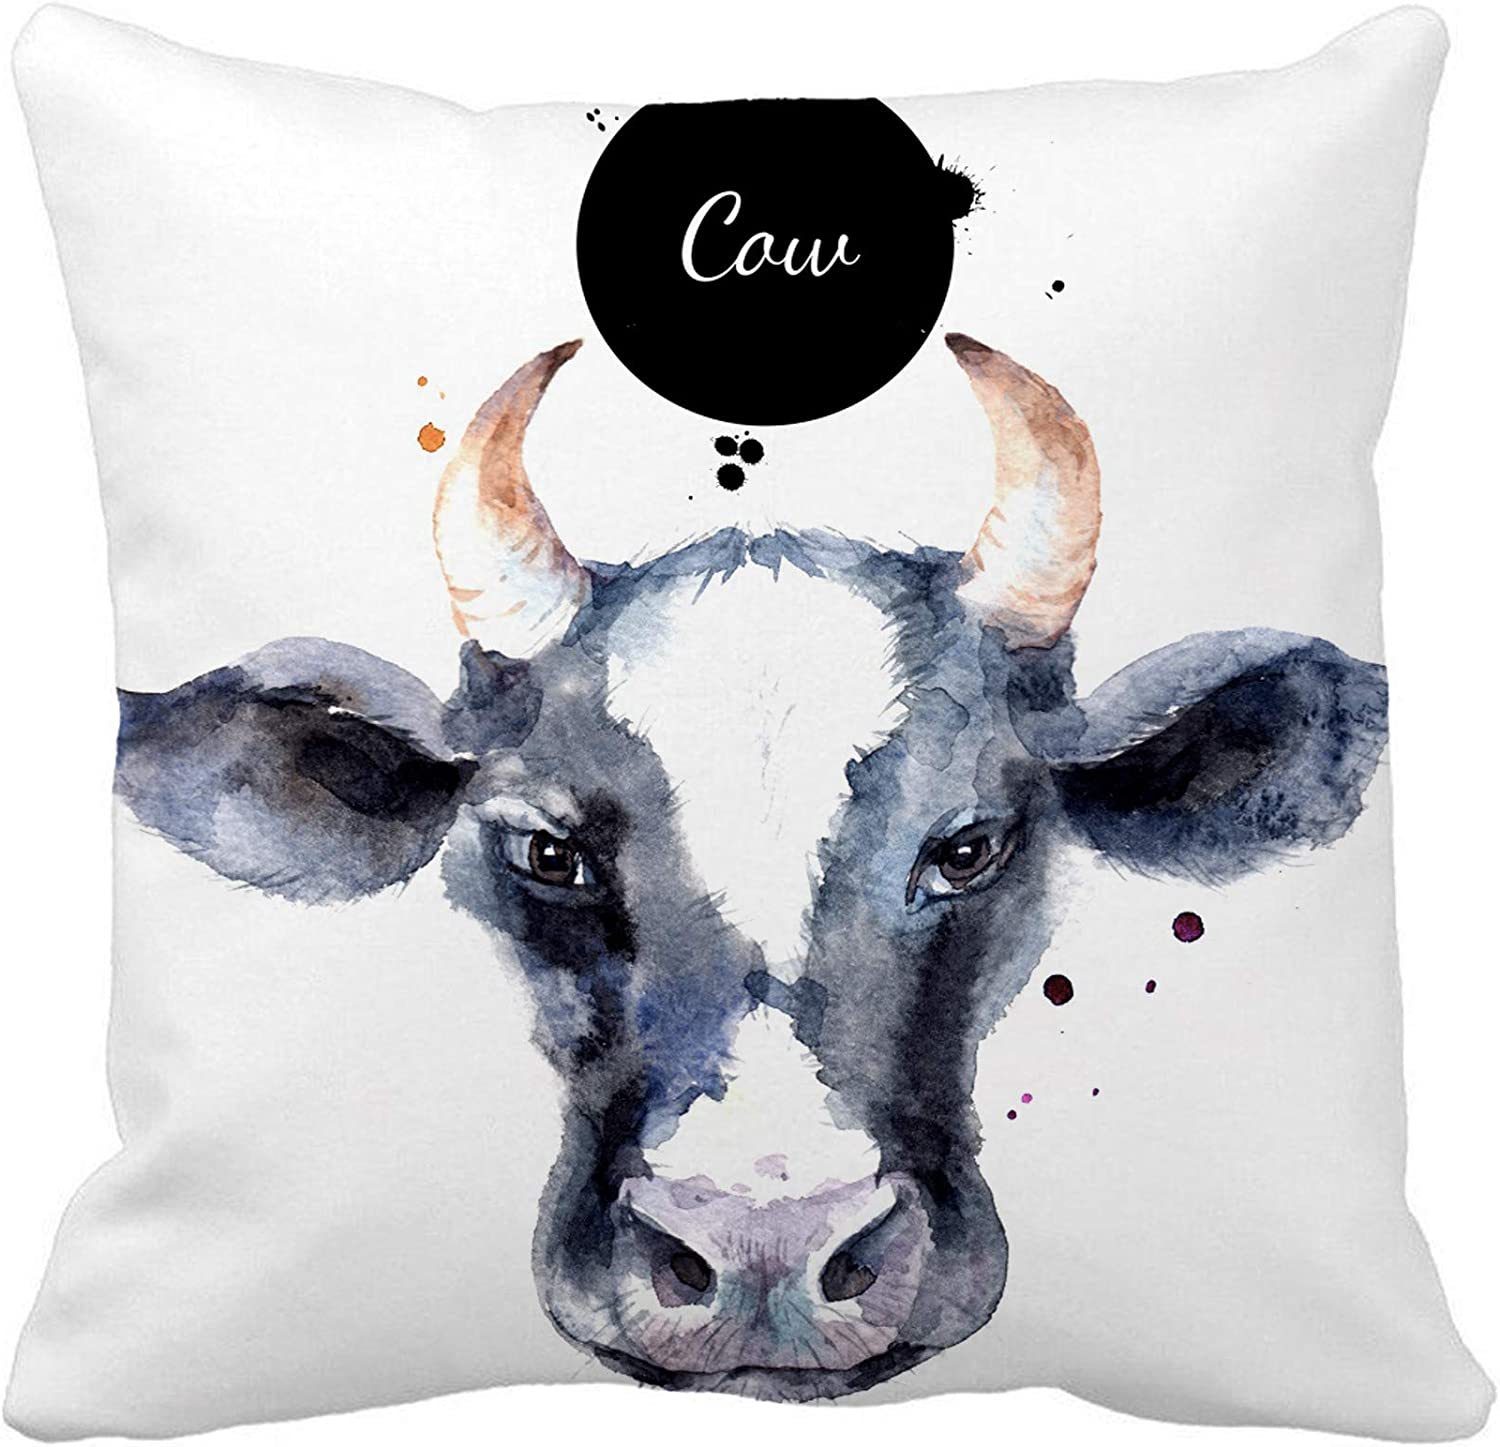 Awowee Throw Pillow Cover Colorful Farm Watercolor Cow Head Sketch Butcher Food Milk 18x18 Inches Pillowcase Home Decorative Square Pillow Case Cushion Cover